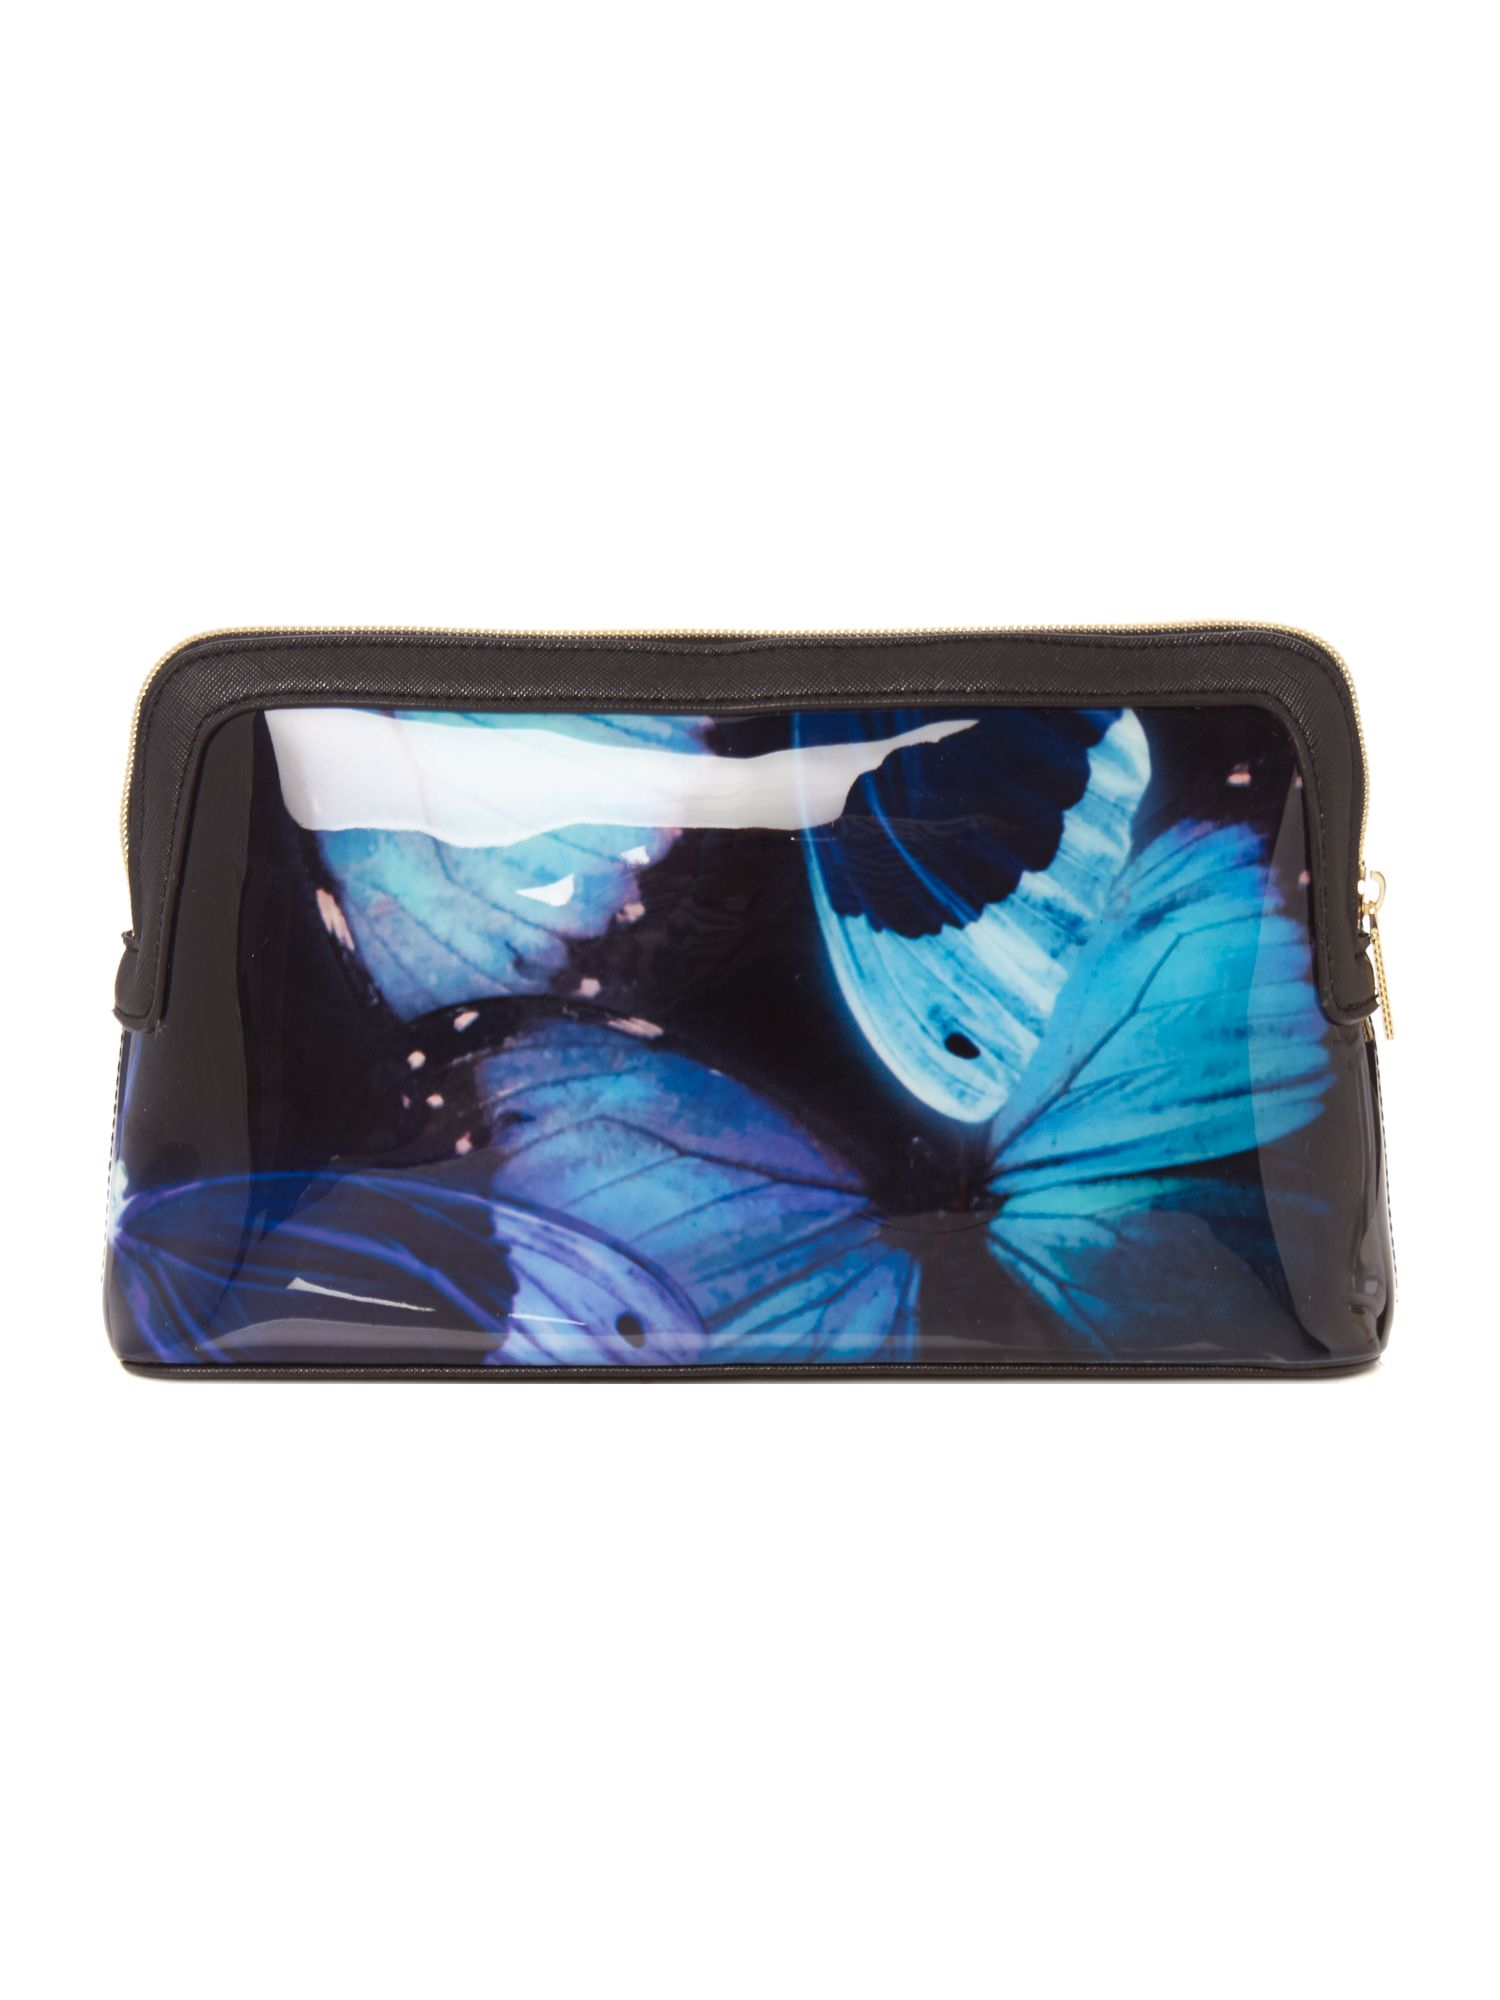 37acf980ddbb0 Lyst - Ted baker Cenlore Multicolour Large Makeup Bag in Blue